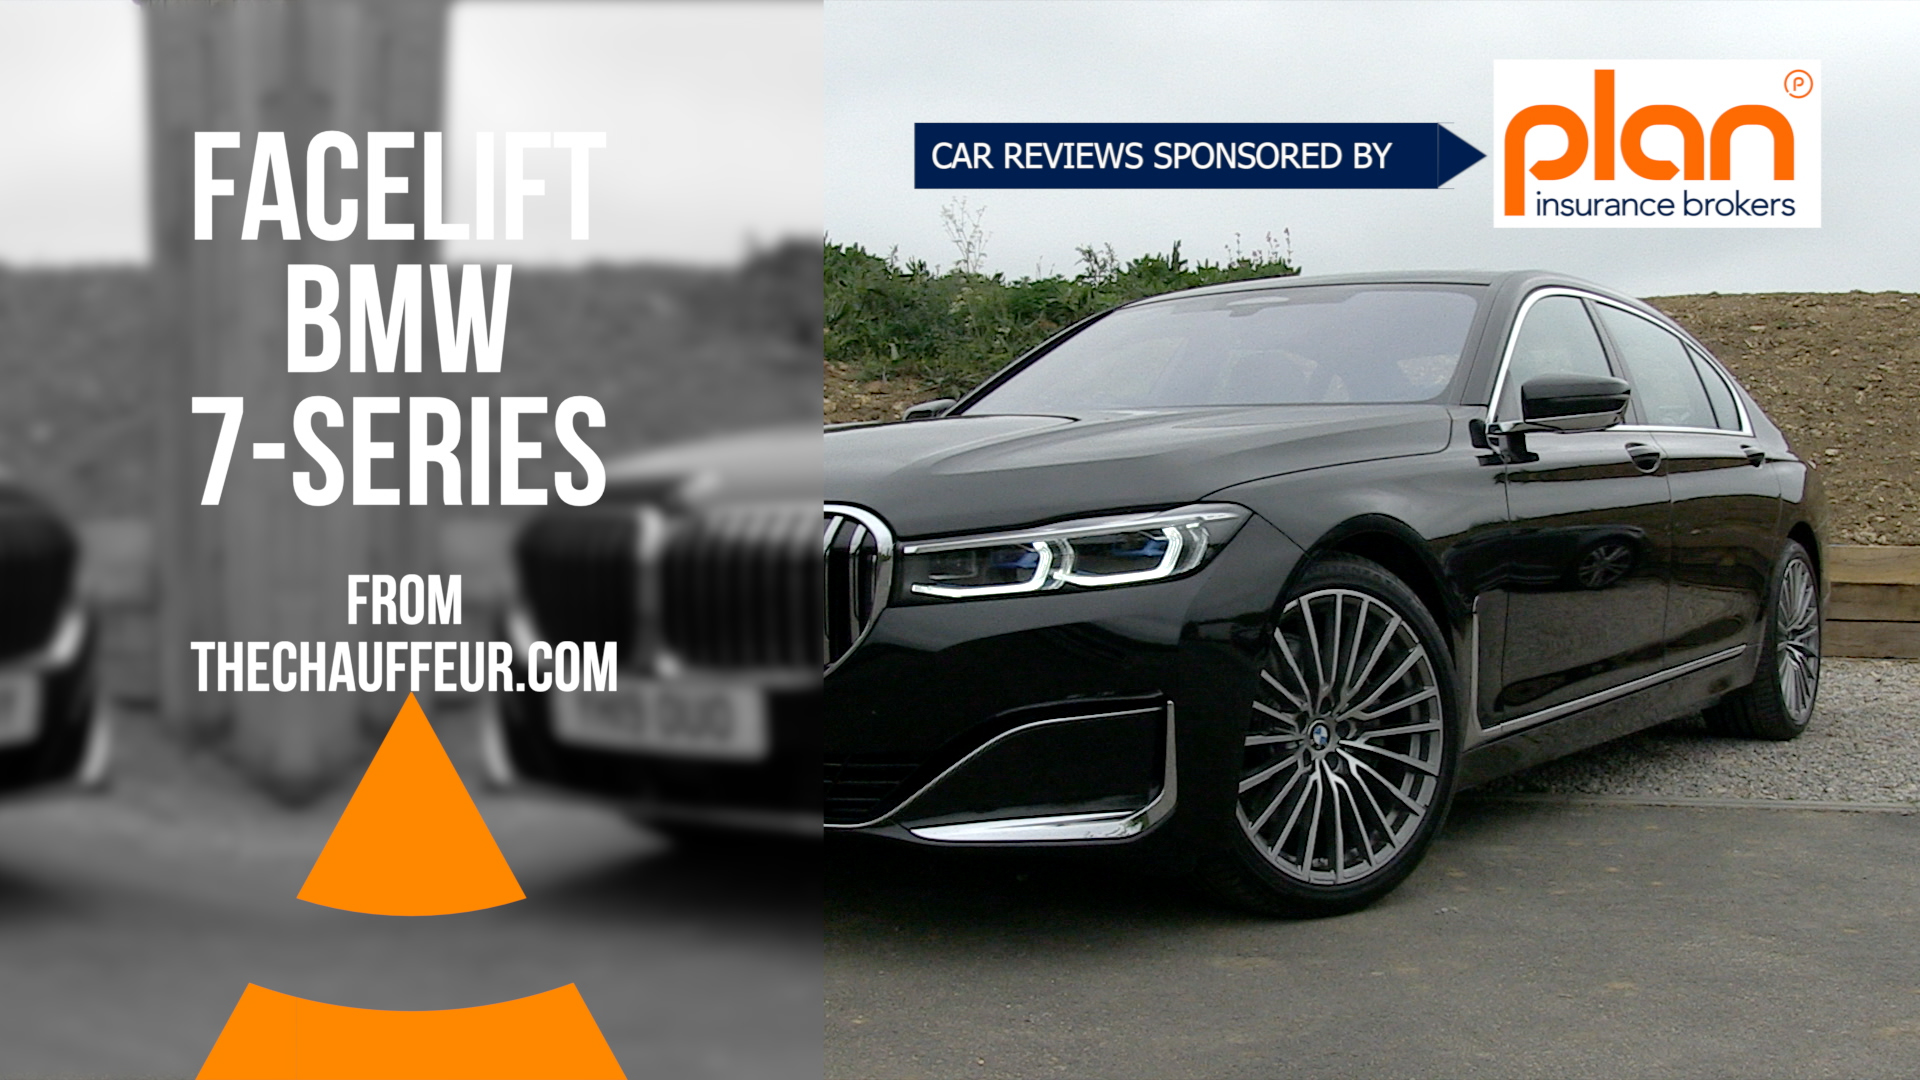 2019 Facelift Bmw 7 Series Driven Thechauffeur Com